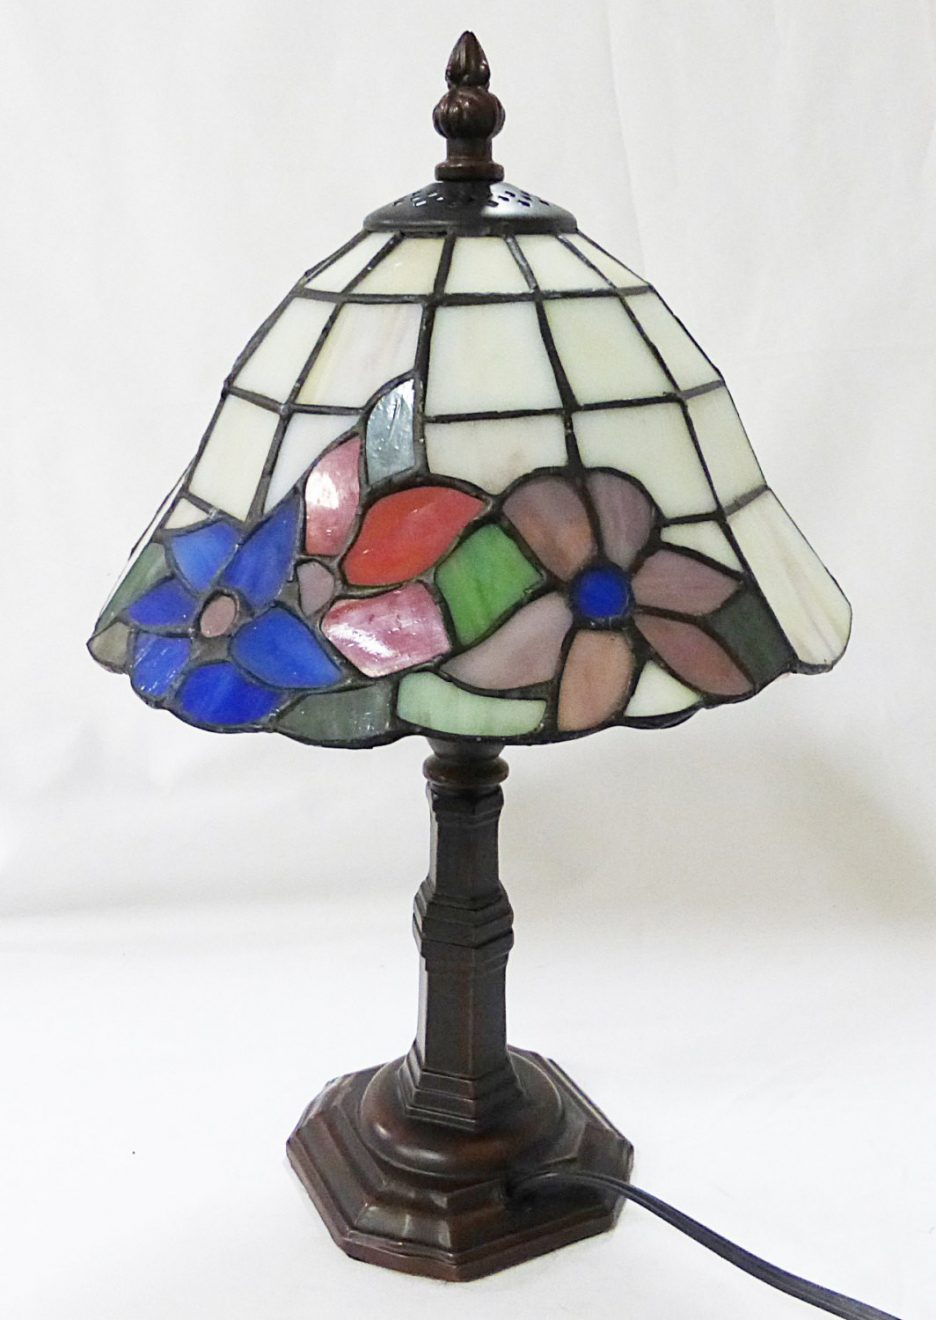 tiffany butterfly lamp antique stained glass lamps for pole table accent retro chairs target threshold chair coral home accents plastic patio and designer marble top end tables